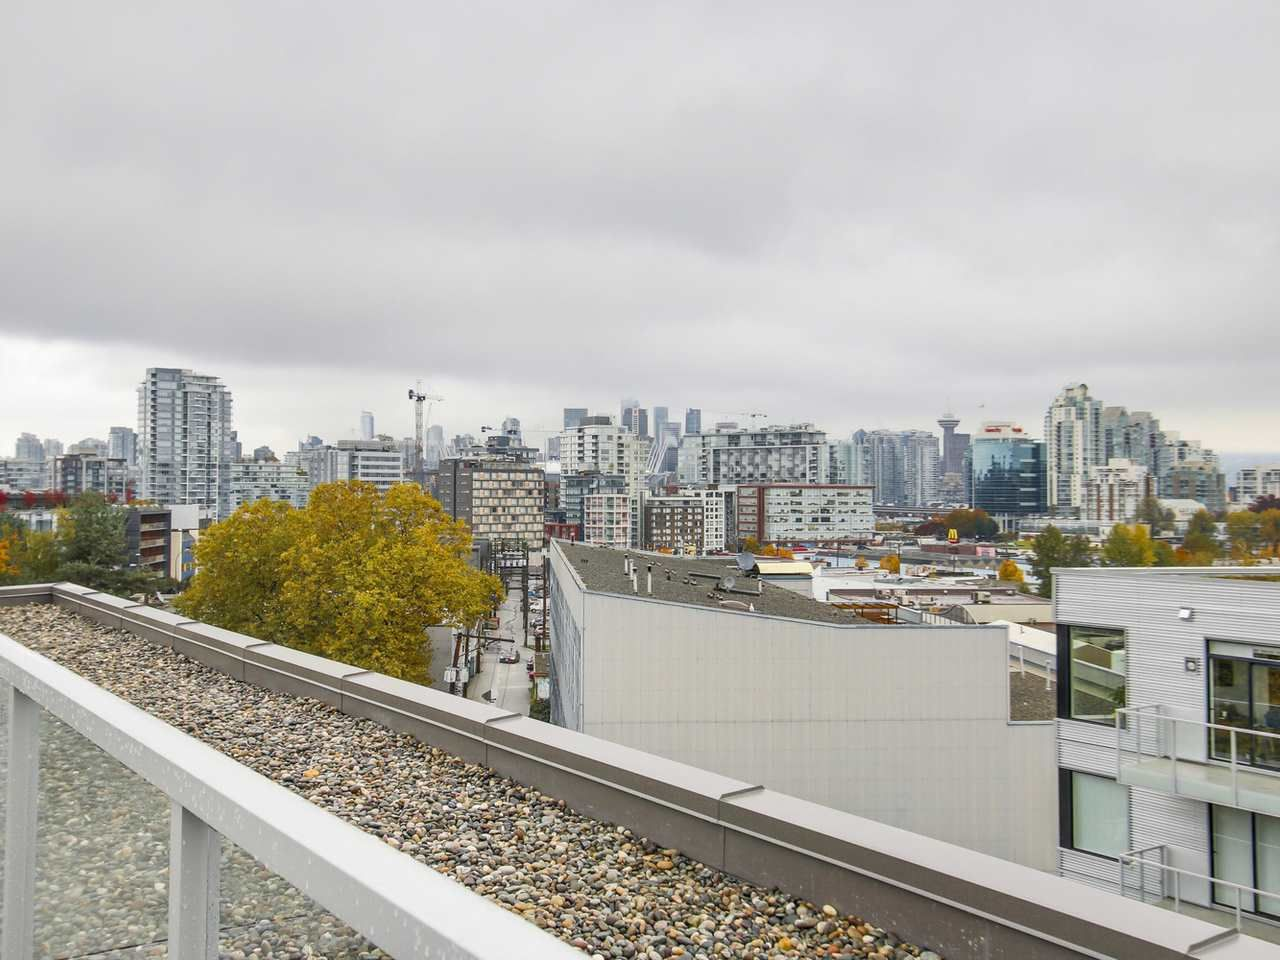 """Photo 13: Photos: 604 417 GREAT NORTHERN Way in Vancouver: Mount Pleasant VE Condo for sale in """"CANVAS"""" (Vancouver East)  : MLS®# R2118078"""